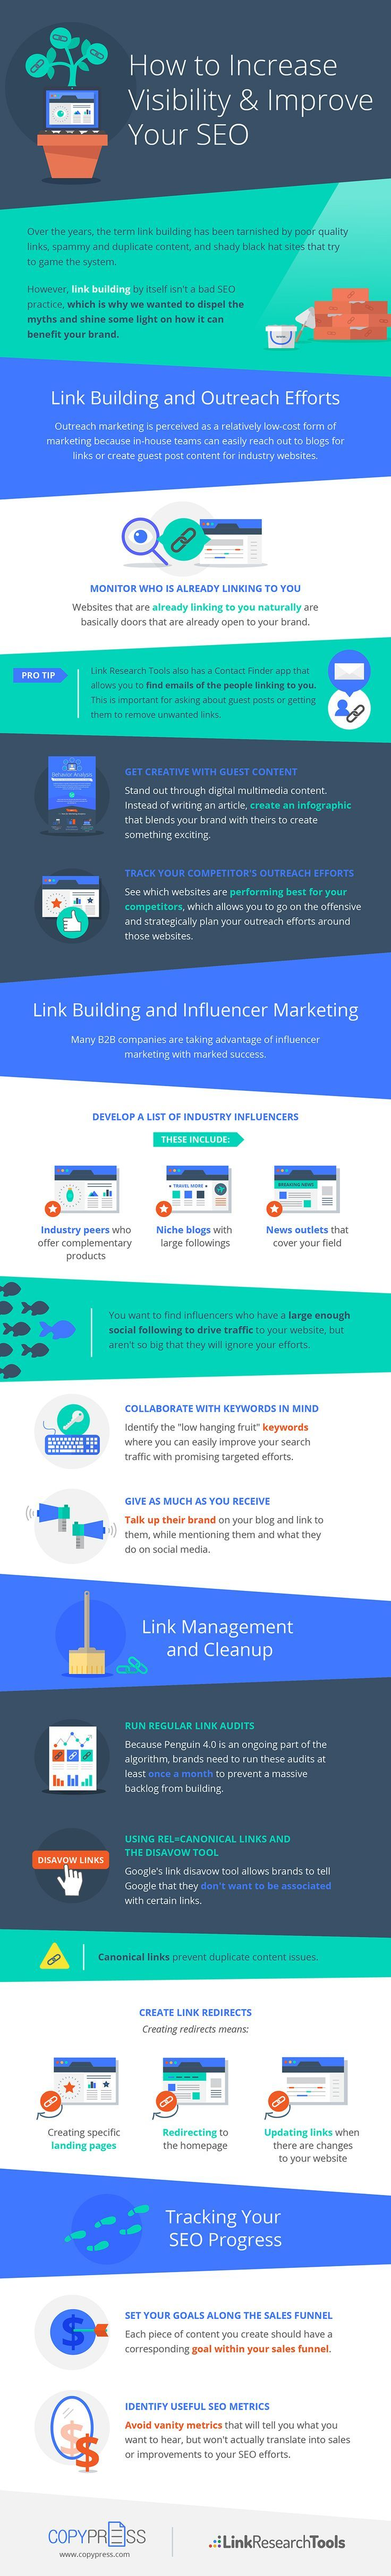 awesome Advanced #SEO - 11 Link Building Tips for Higher Website Rankings #Infographic...